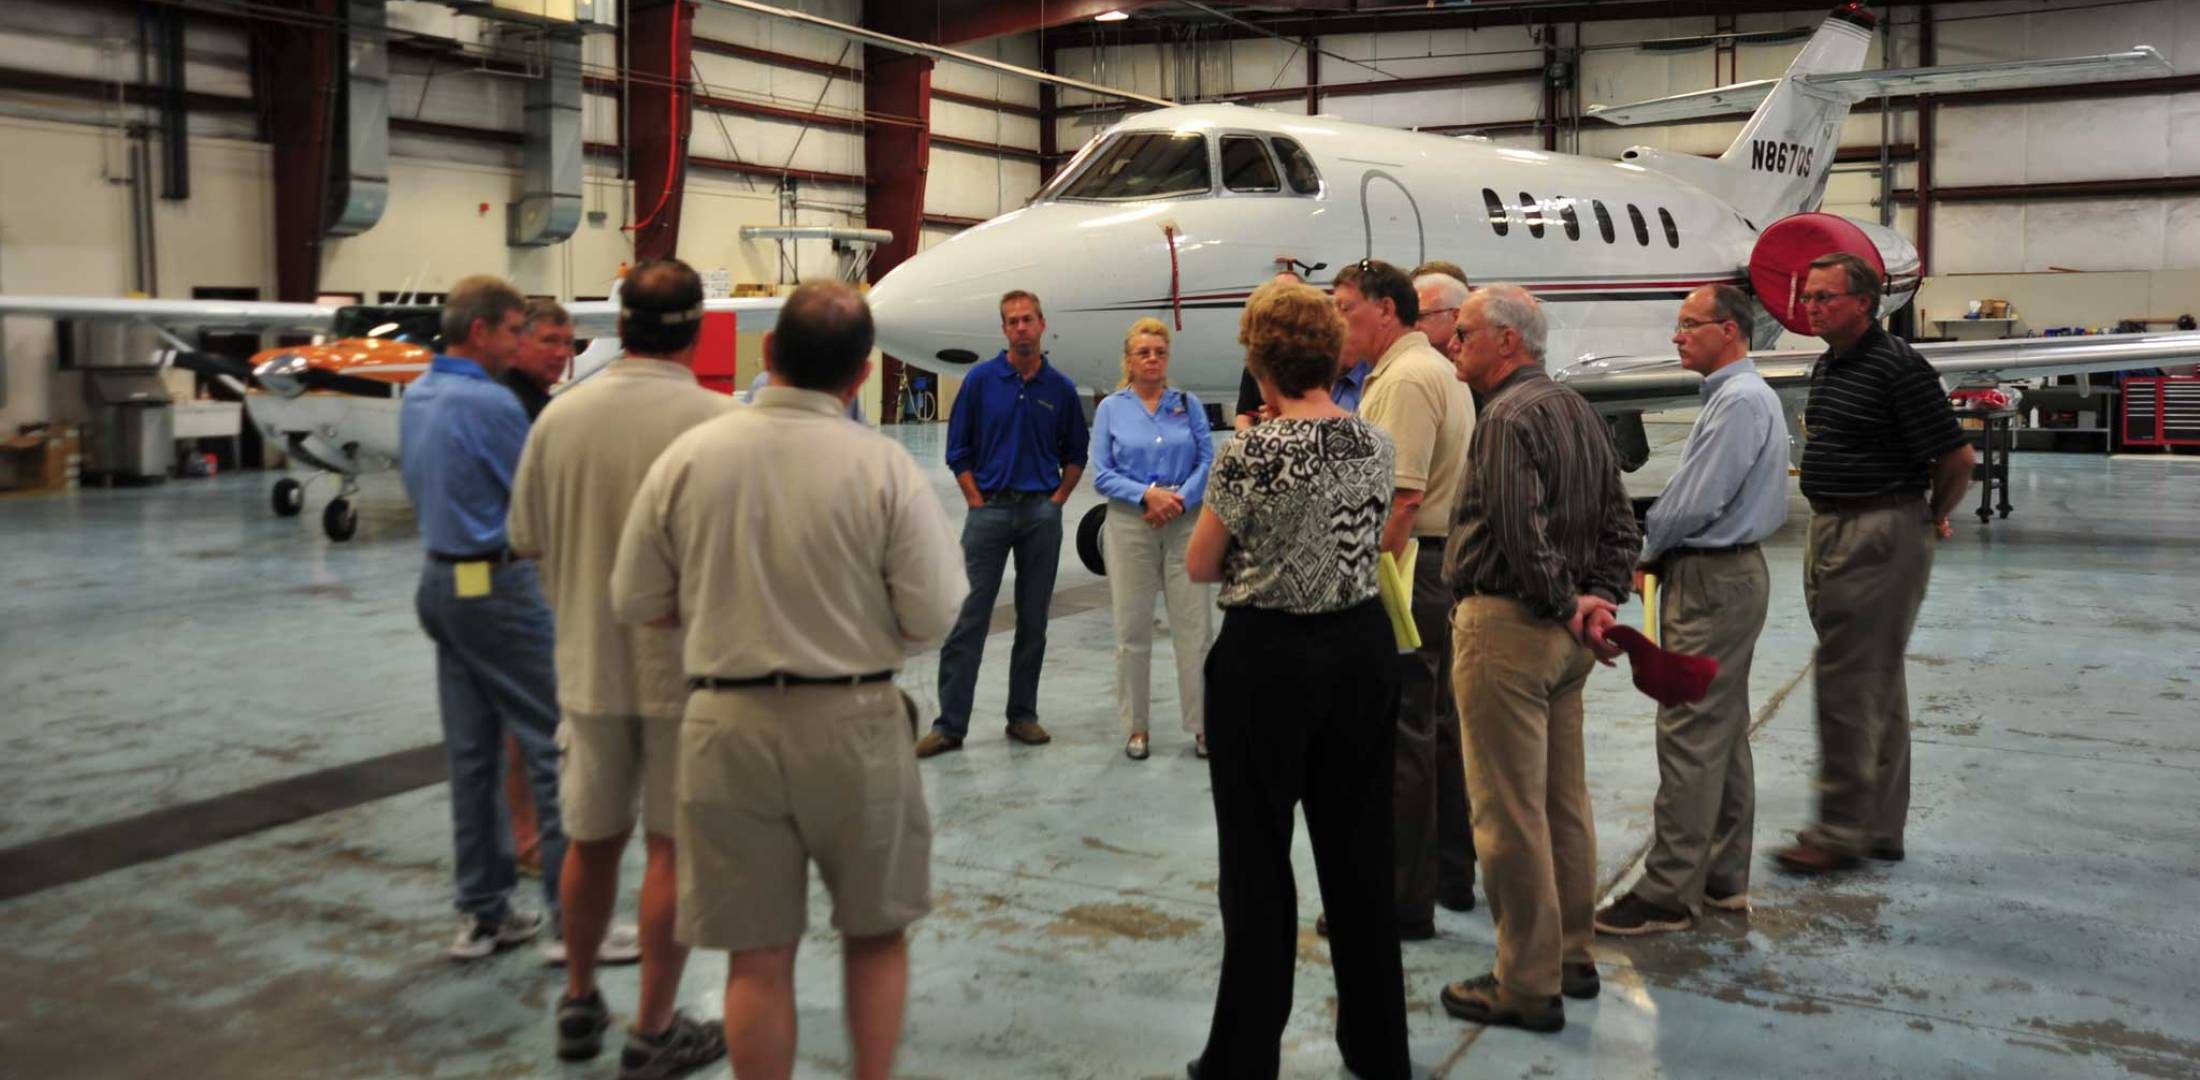 Aviation 20 Group members tour an FBO hangar